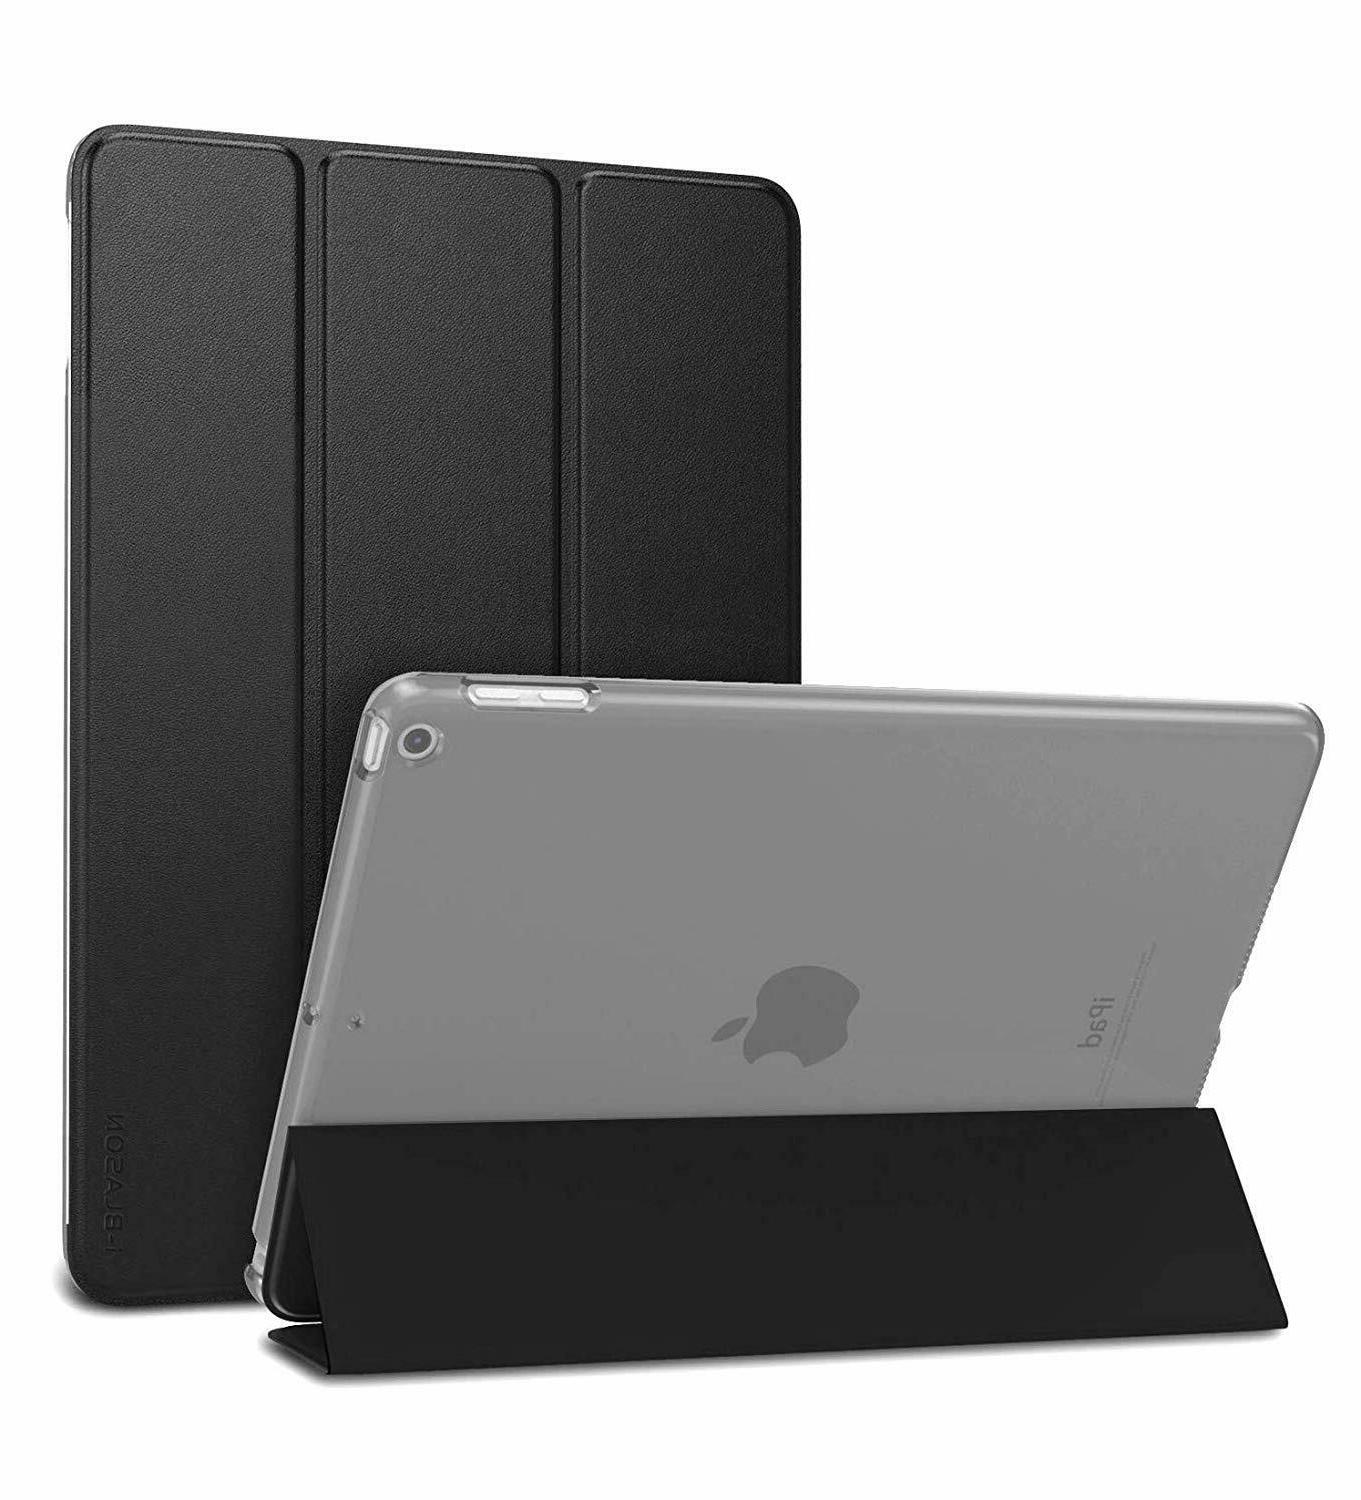 "For iPad 10.2"" / iPad Gen, Trifold Stand Hard"